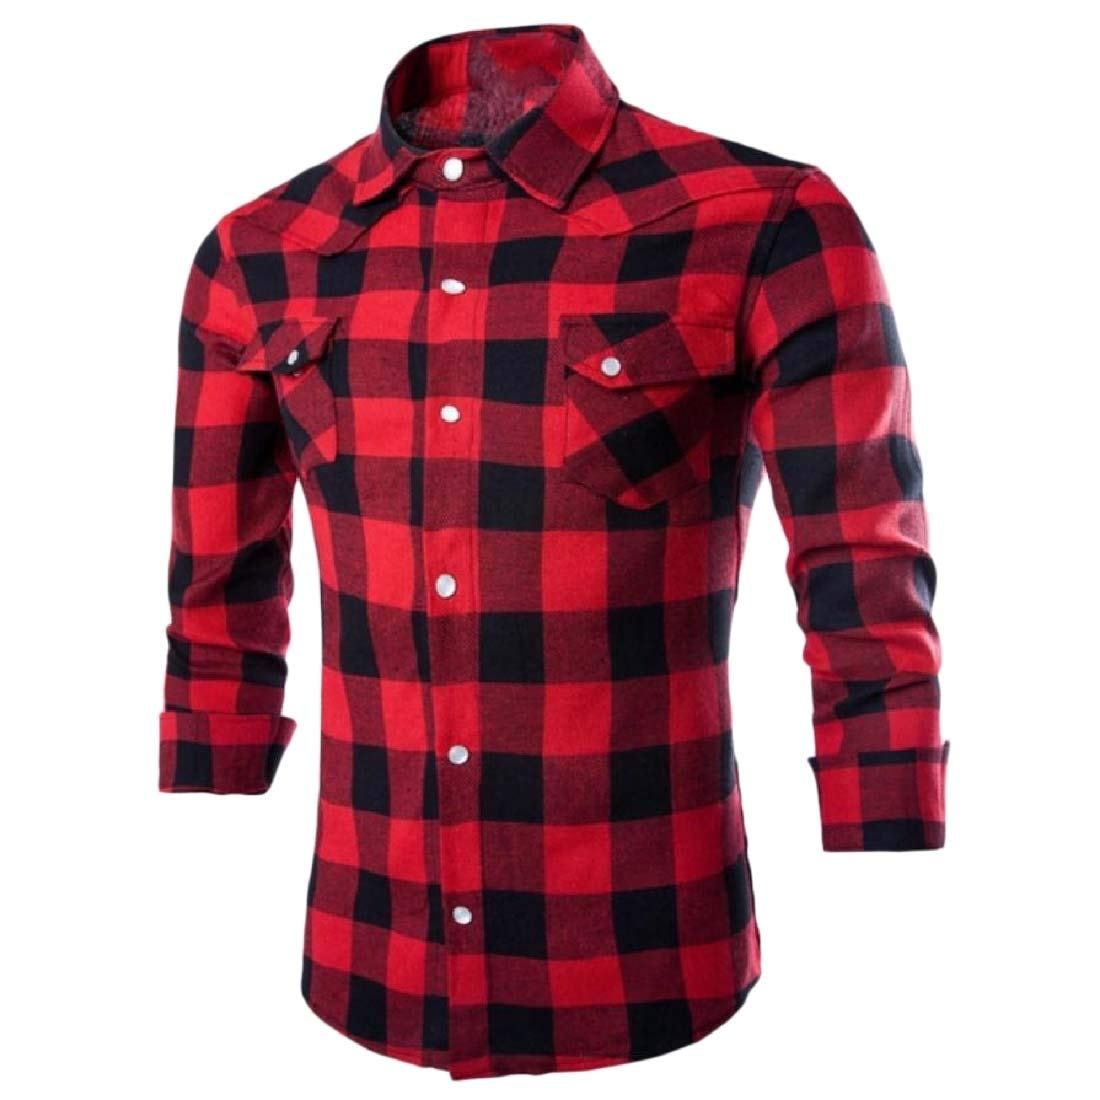 YUNY Mens Funny Big and Tall Classic Tops Grid Woven Dress Shirts Red M